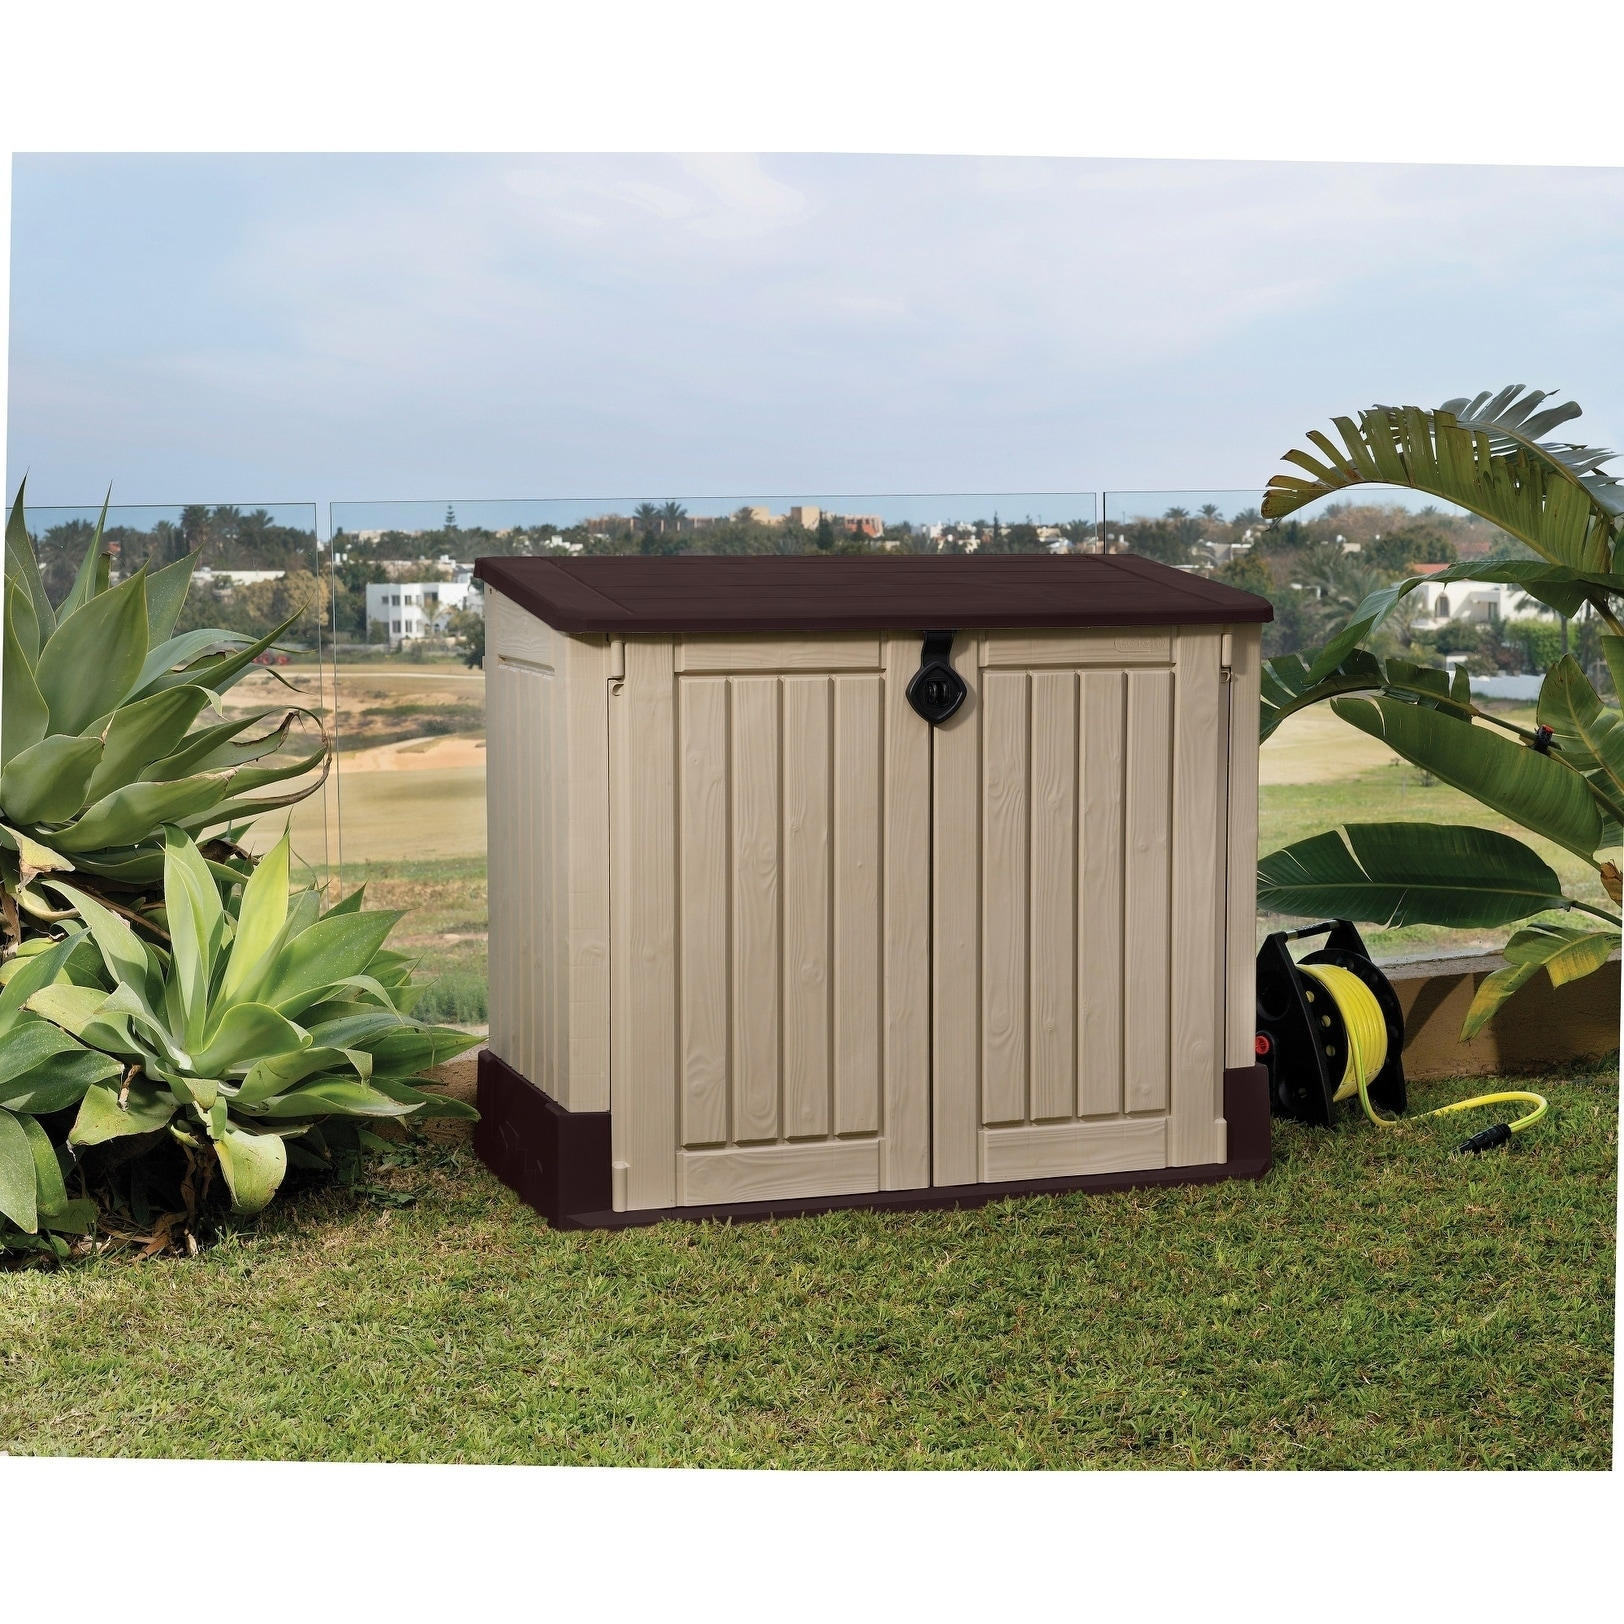 Shop Keter Store It Out MIDI Outdoor Plastic Resin Horizontal Storage Shed    Free Shipping Today   Overstock.com   23128238